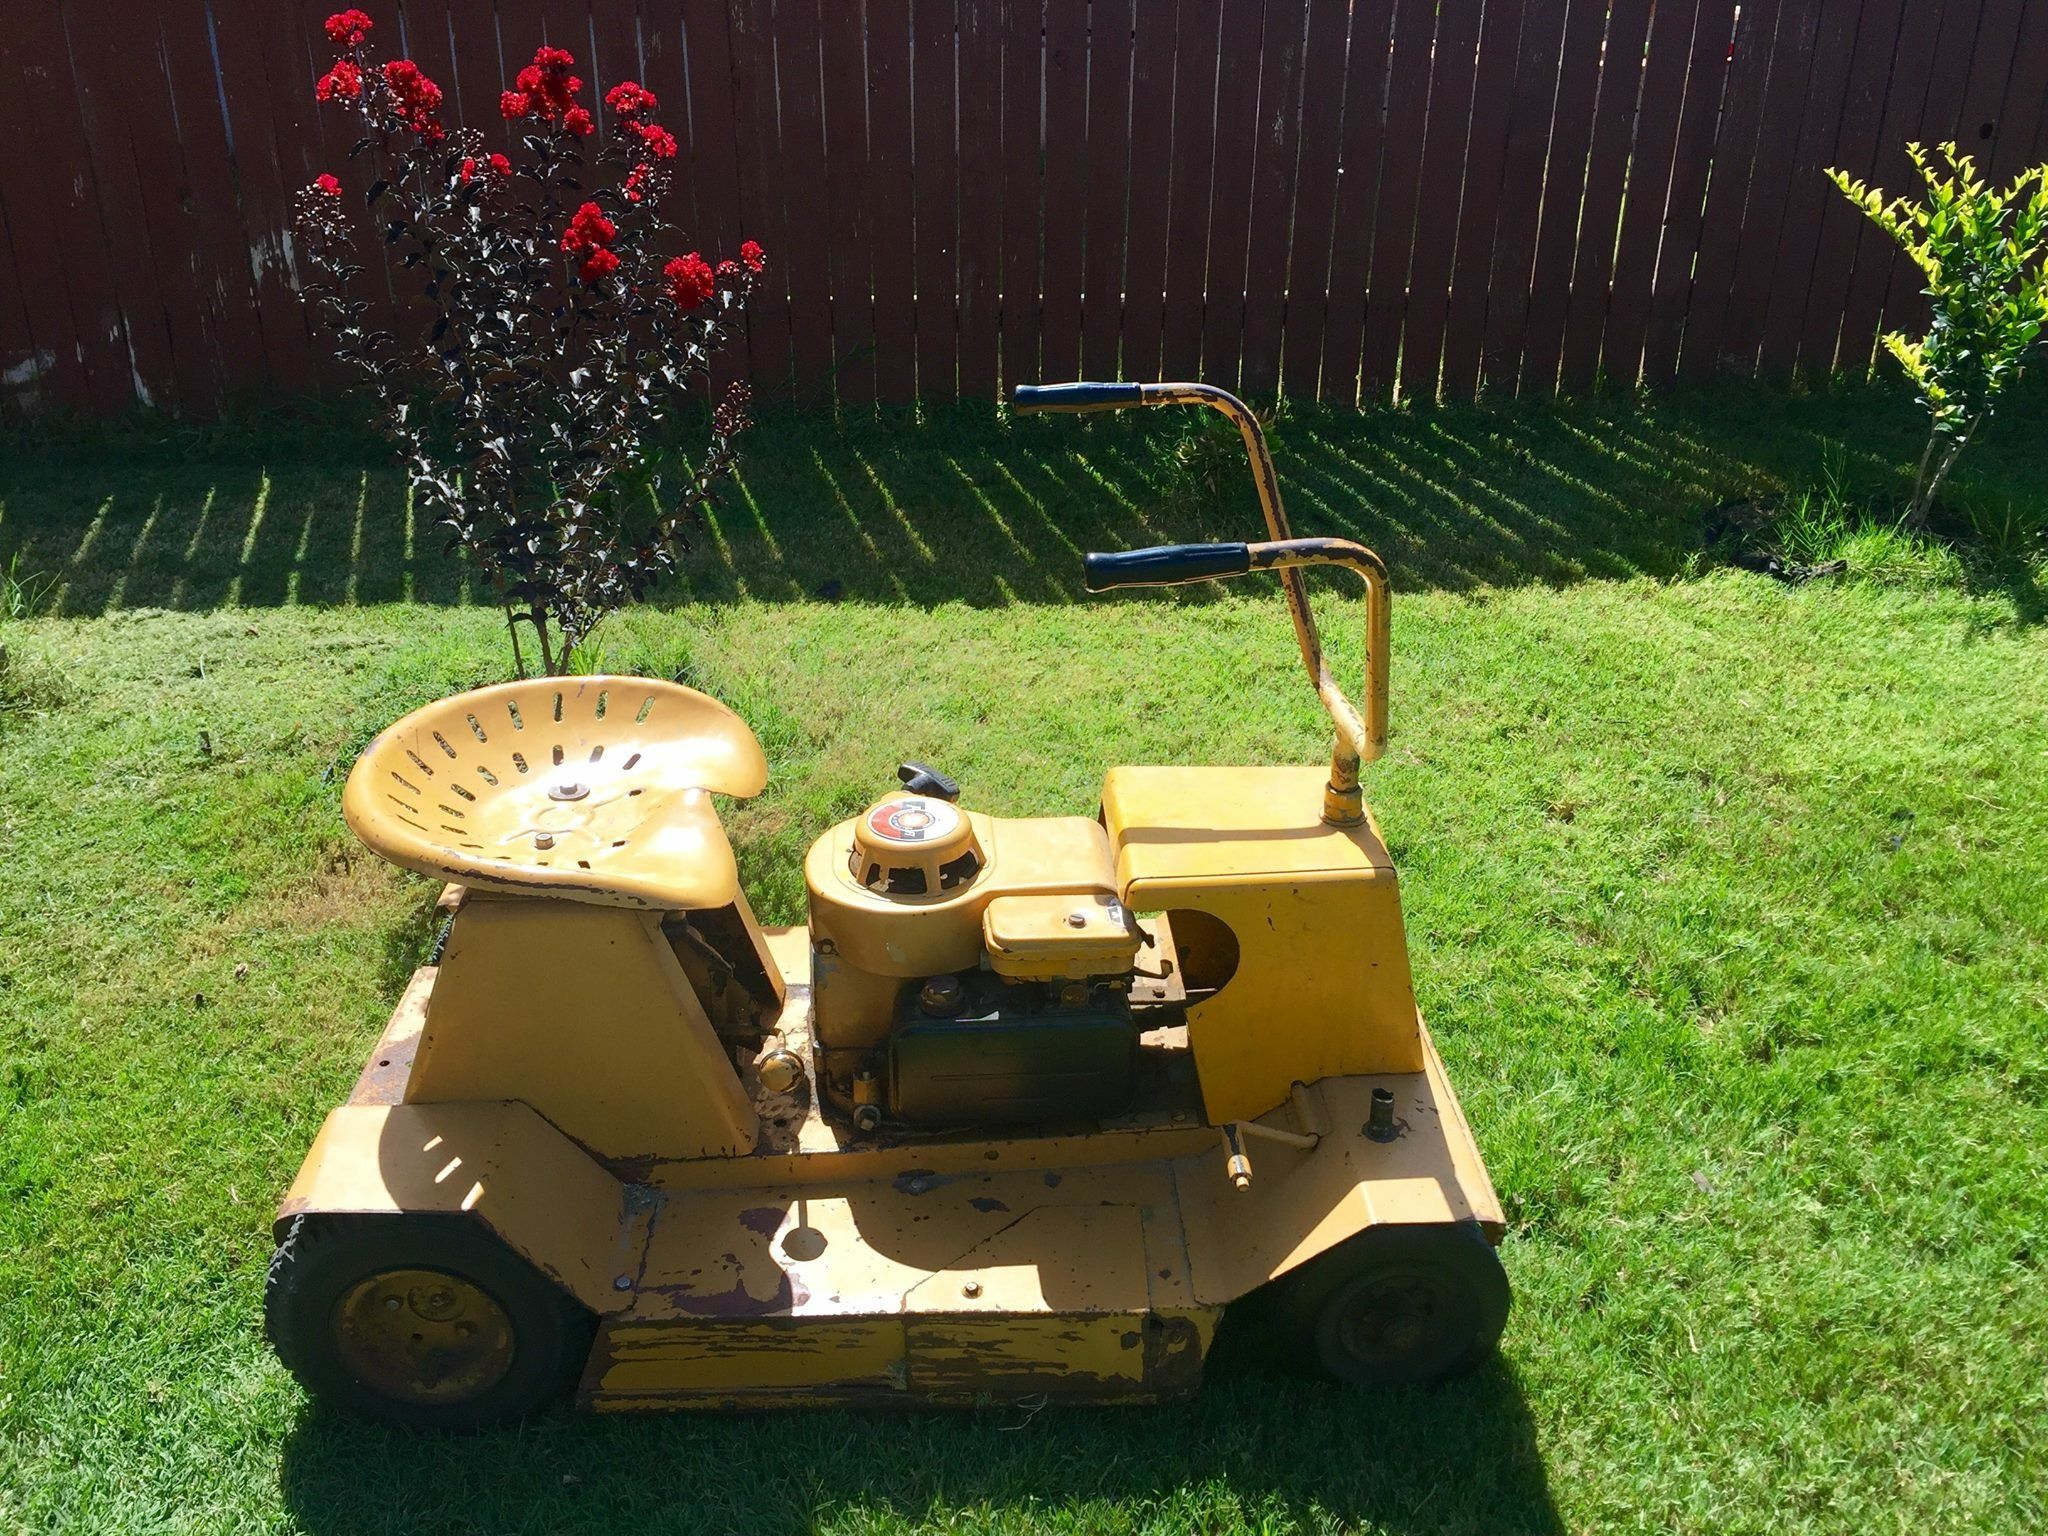 1960 S Kraft 4 Cycle Magnetron Riding Lawnmower By Briggs Stratton Still Runs Great